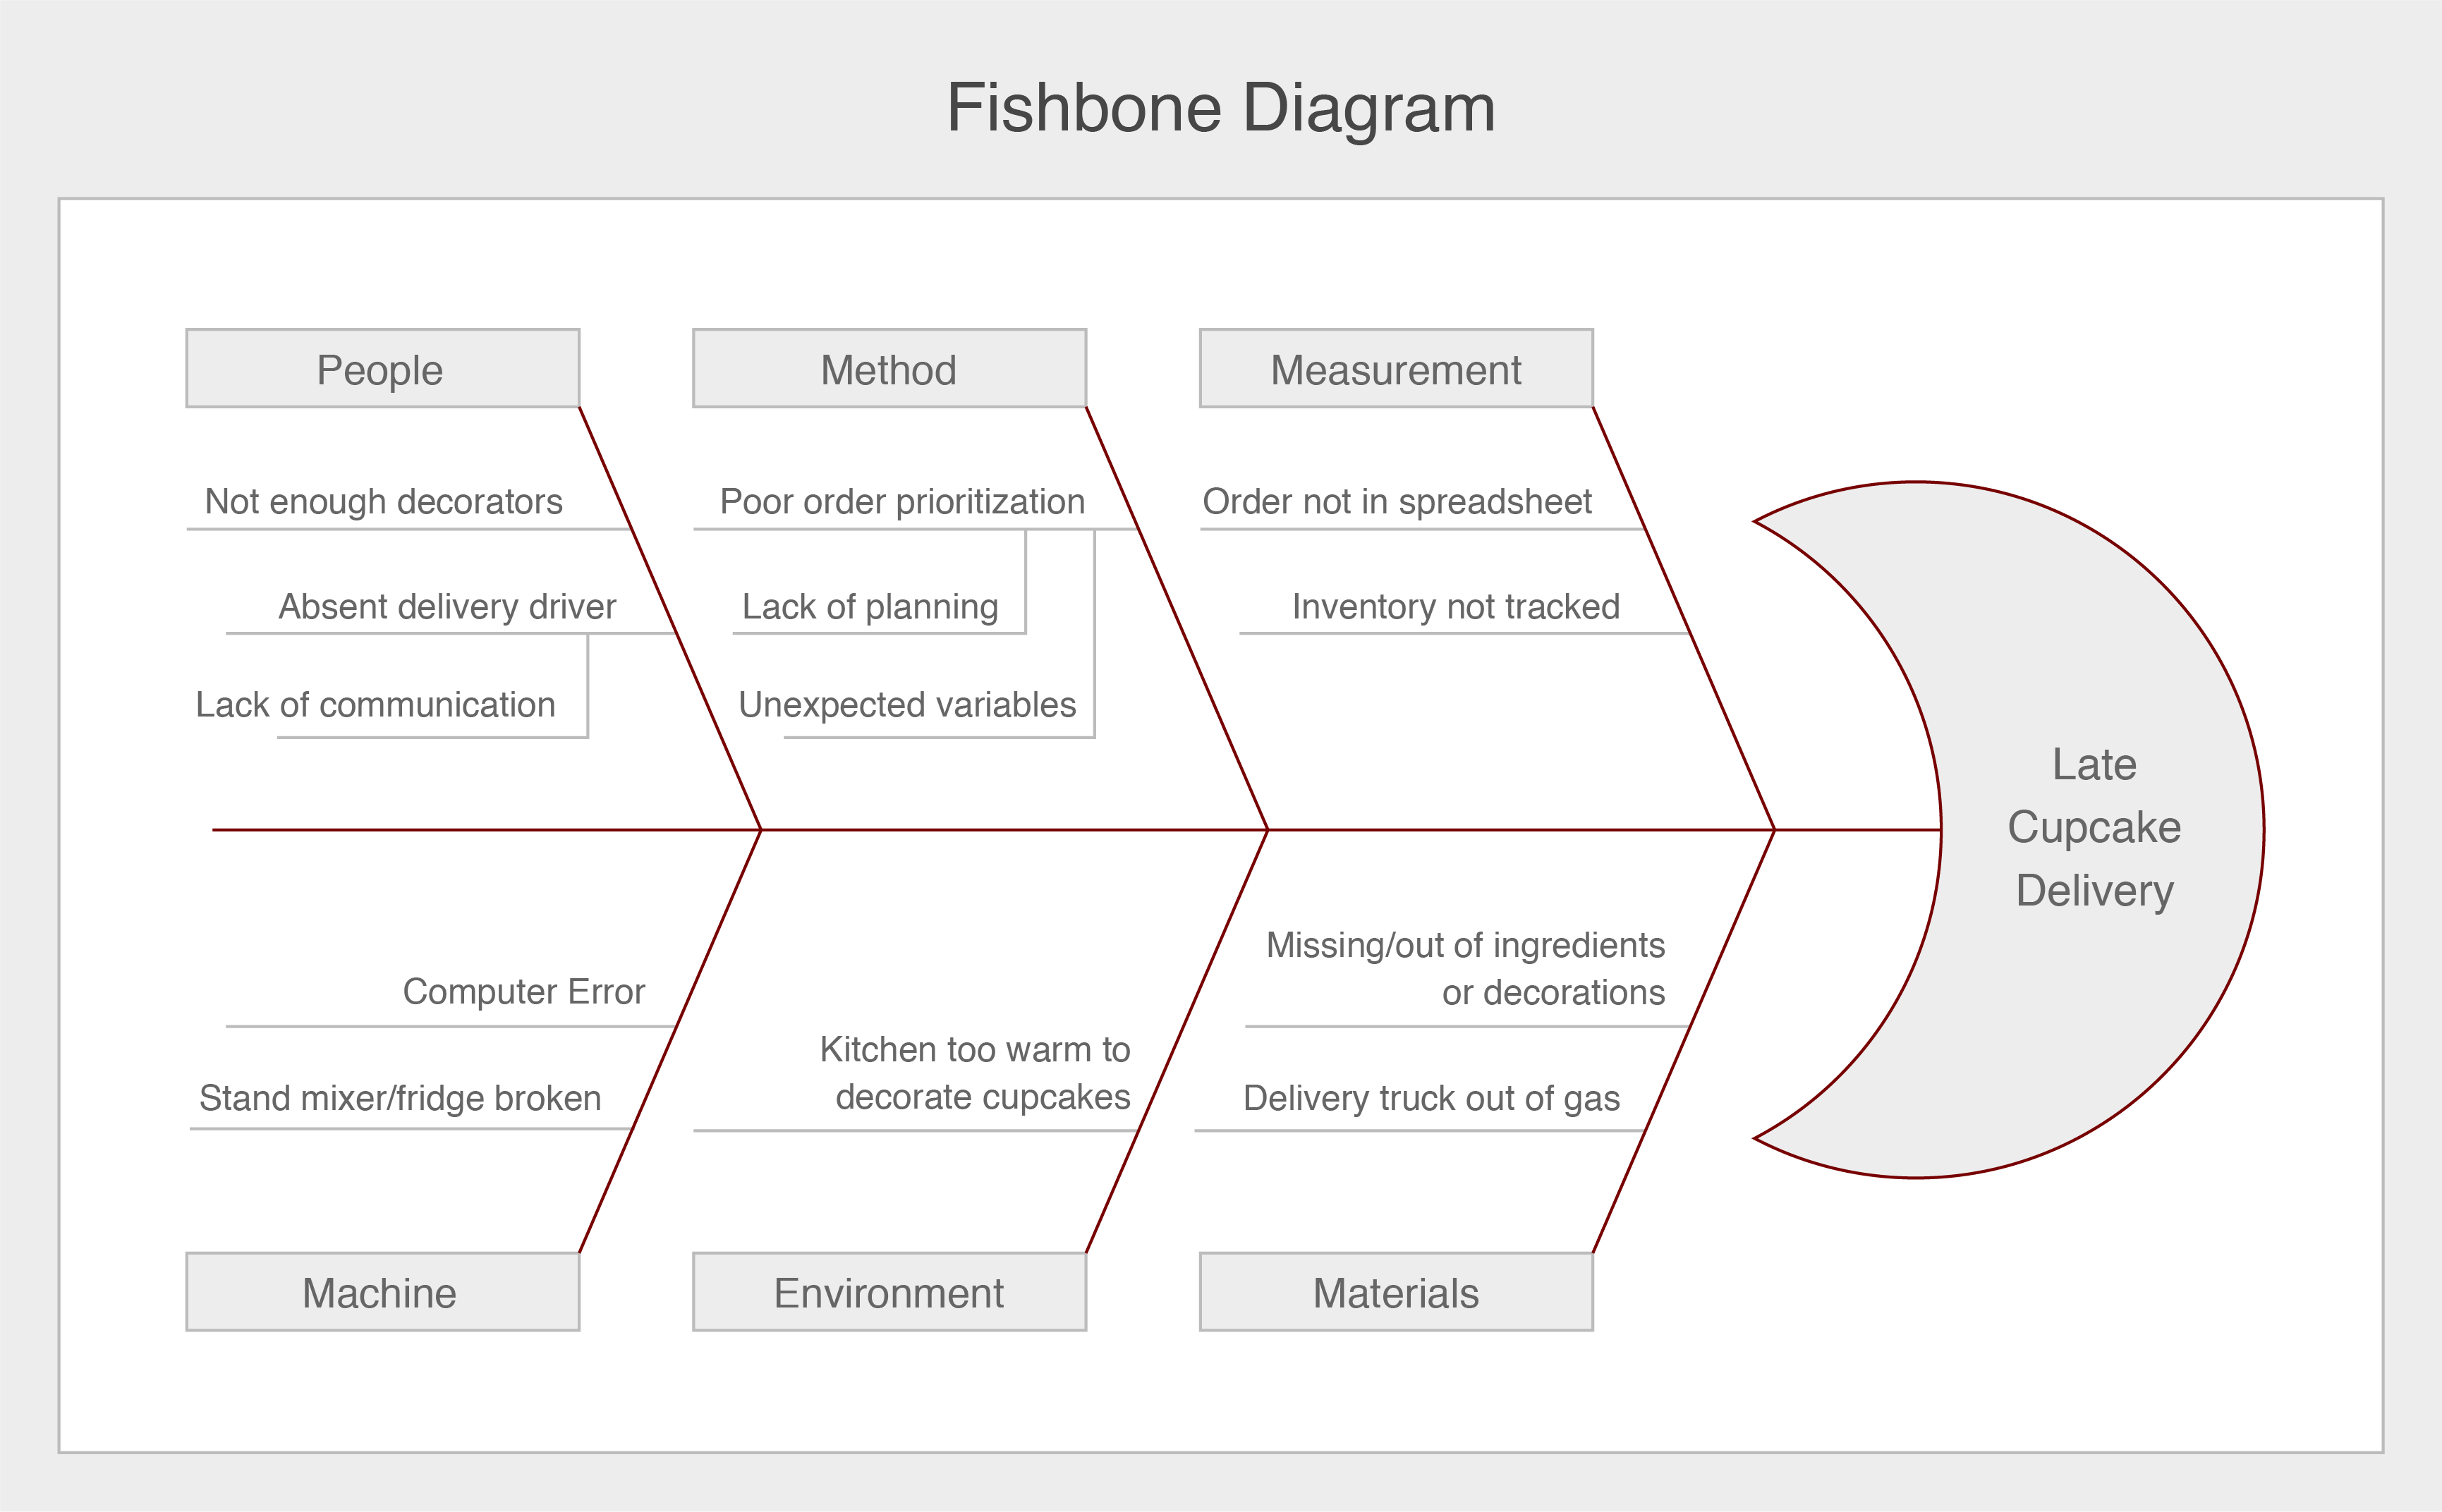 A Fishbone Diagram showing the issues with late cupcake delivery.